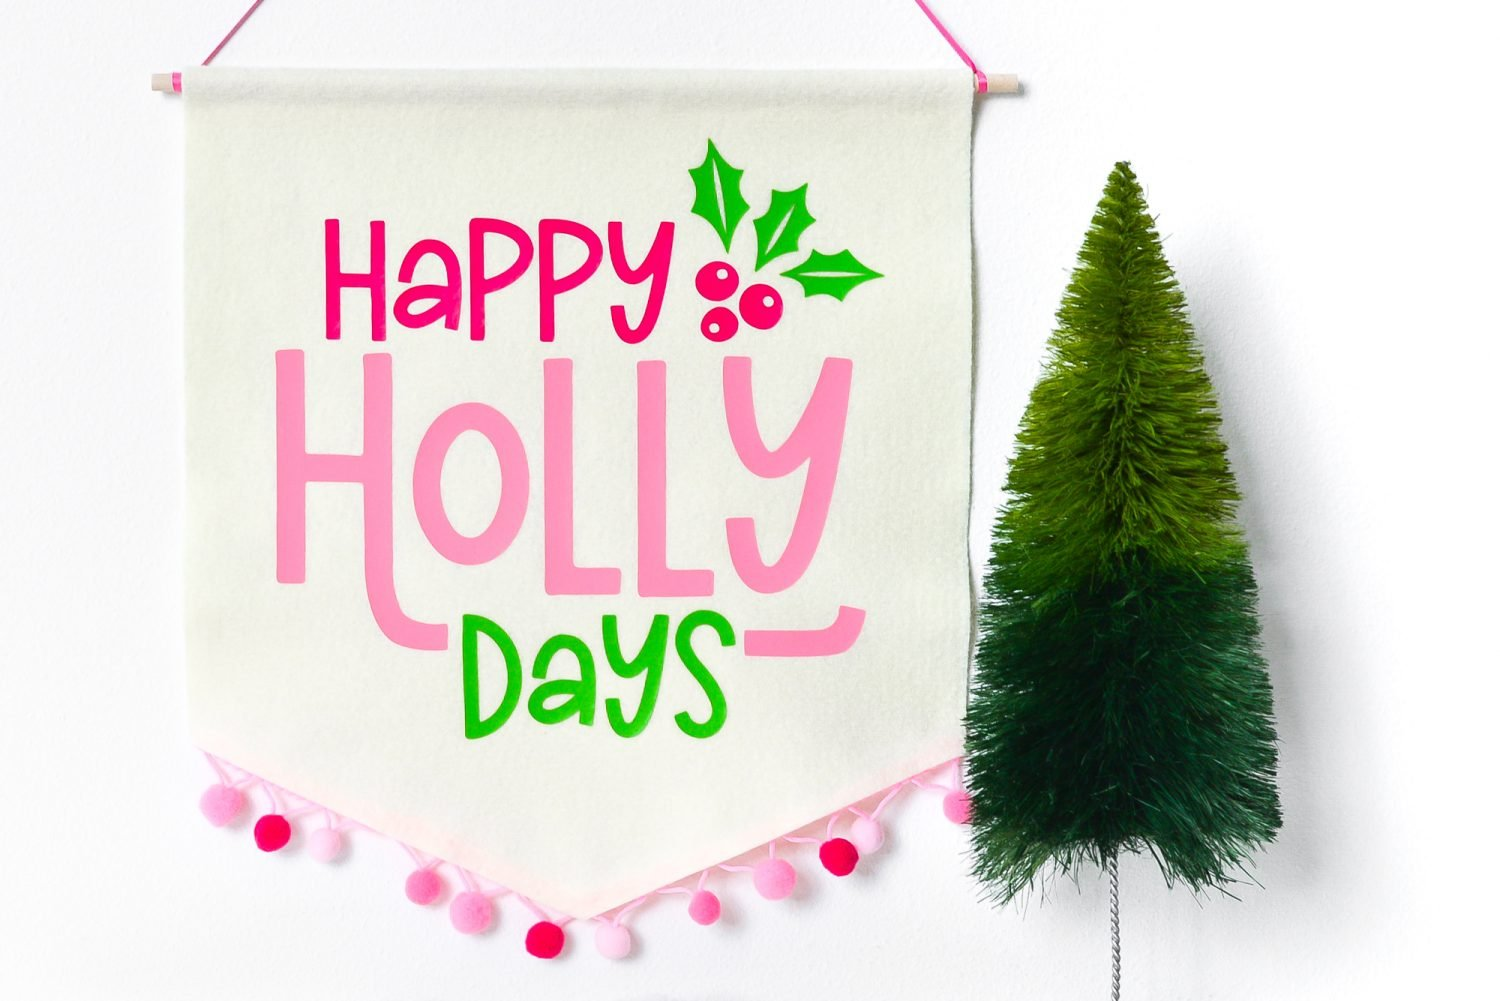 Happy holly days SVG file